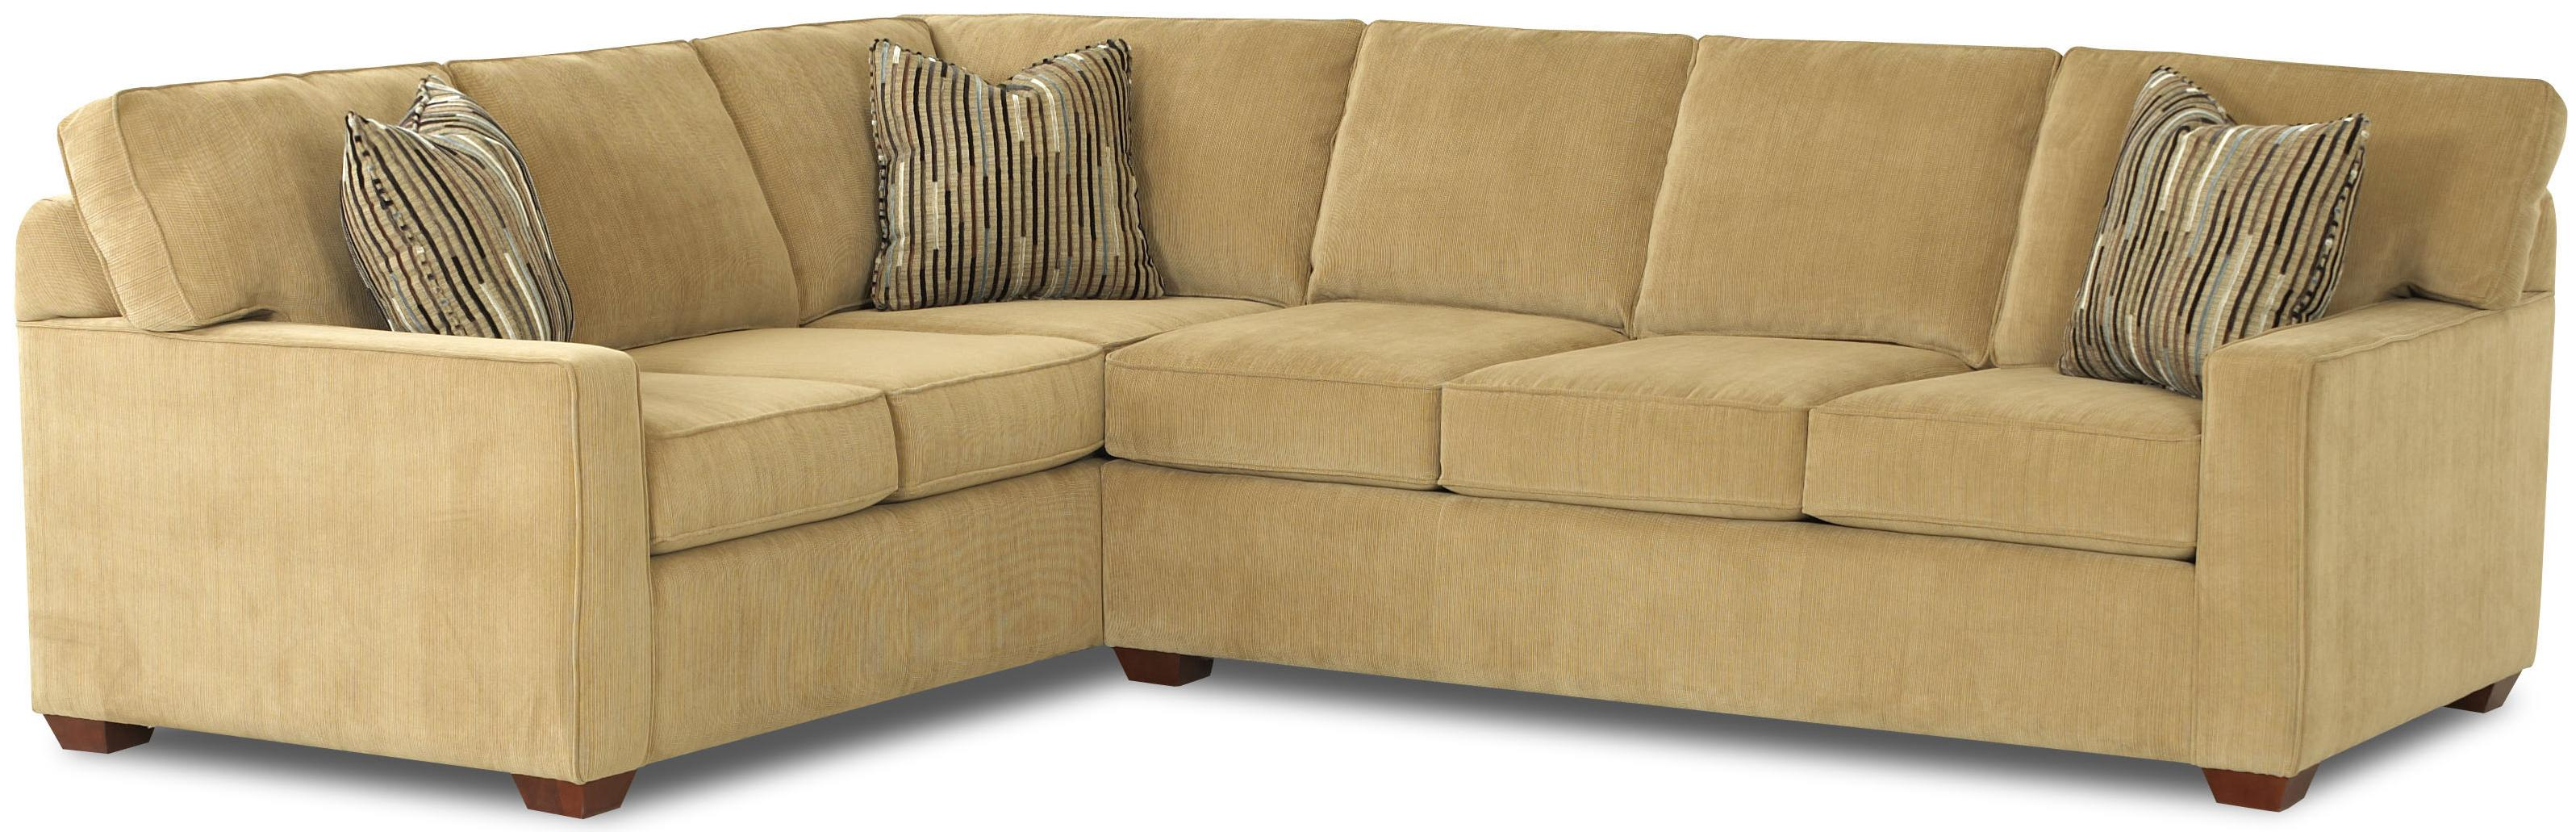 L Shaped Contemporary Sectional by Klaussner